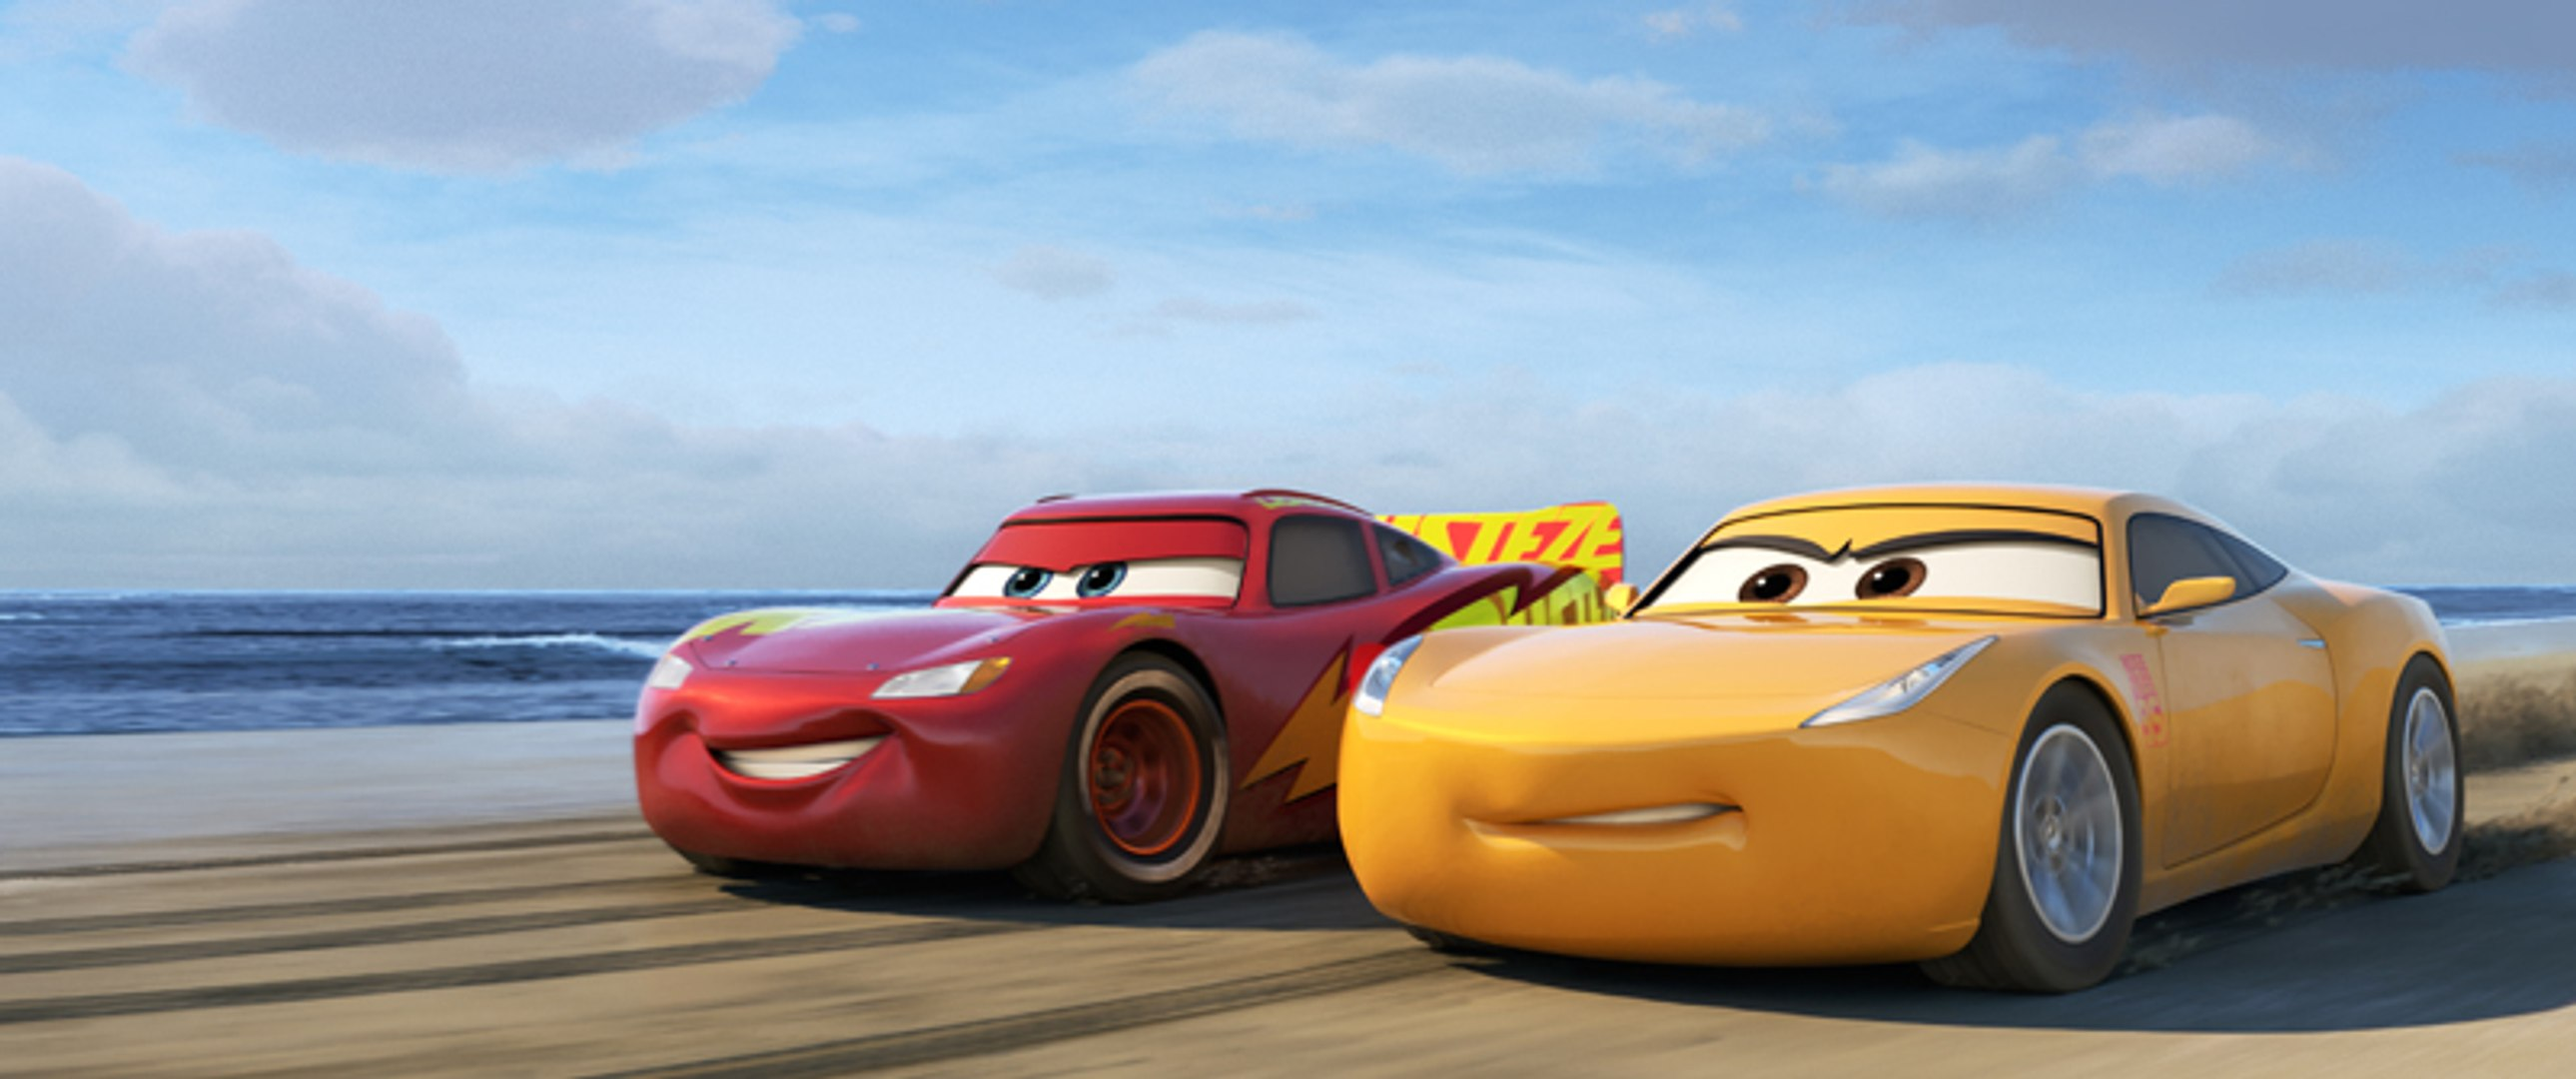 Cars 3 2017 Fuii Movie Streaming Video Dailymotion